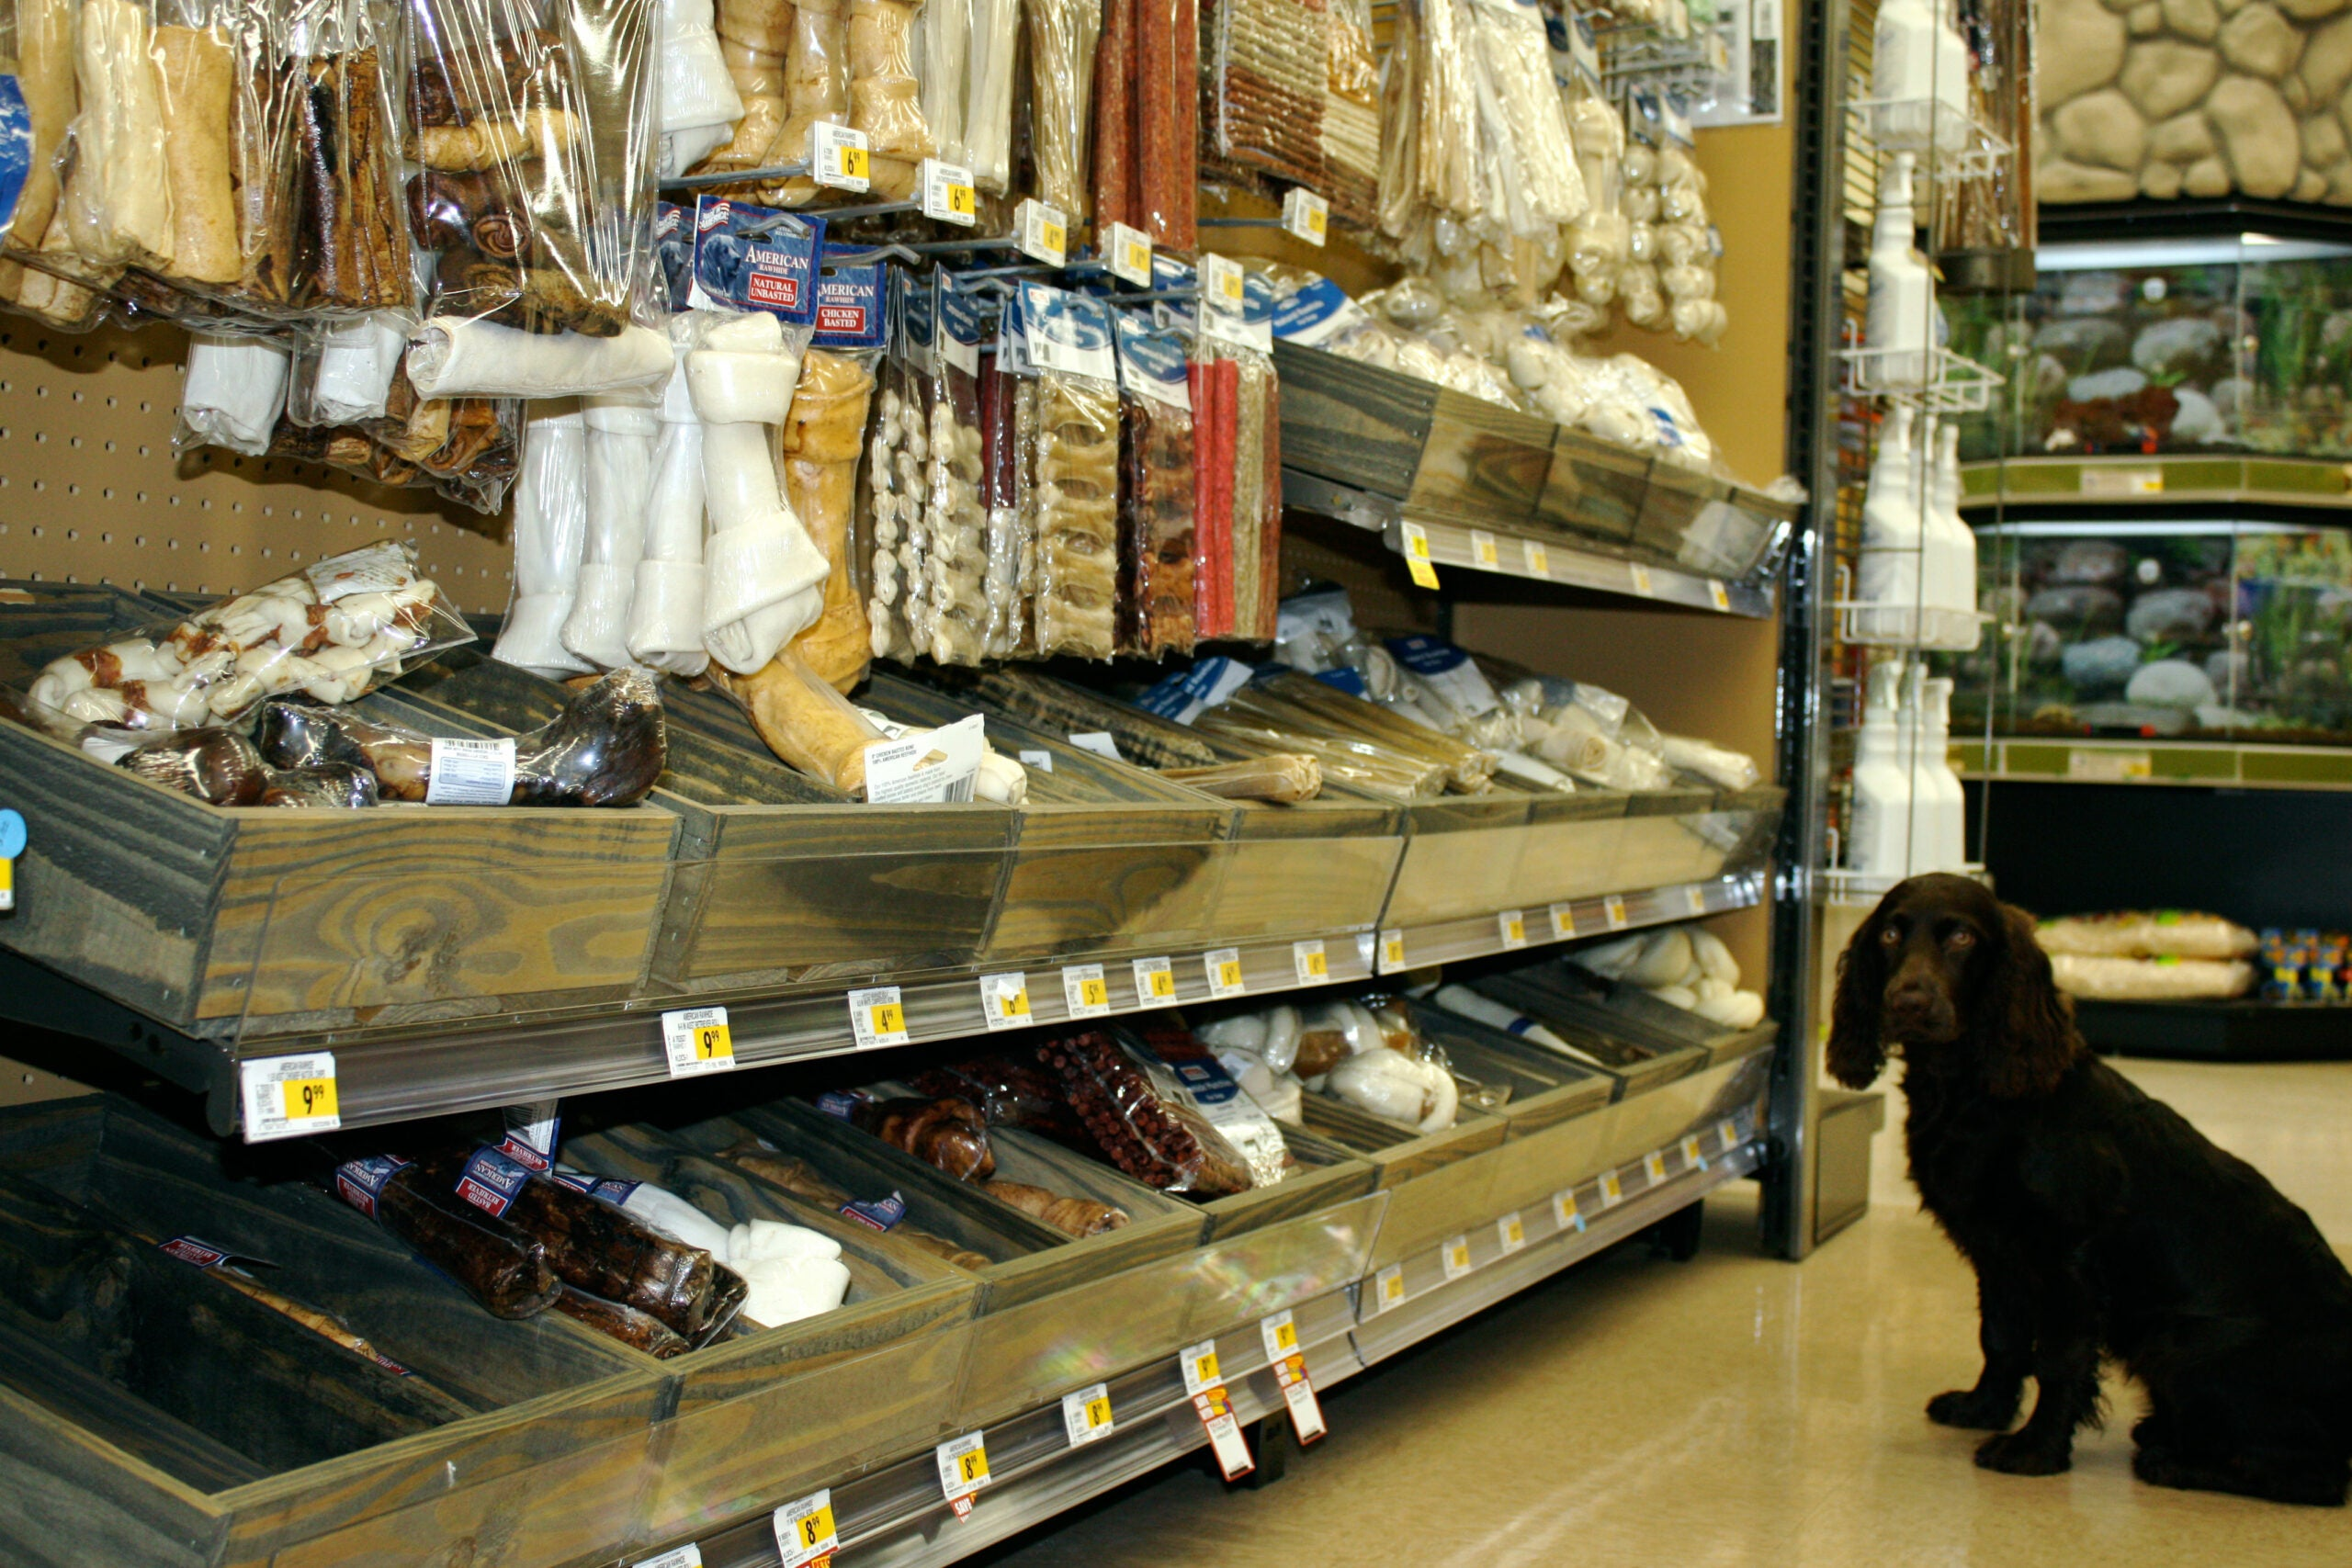 Rawhide: Good or Bad for Pup?